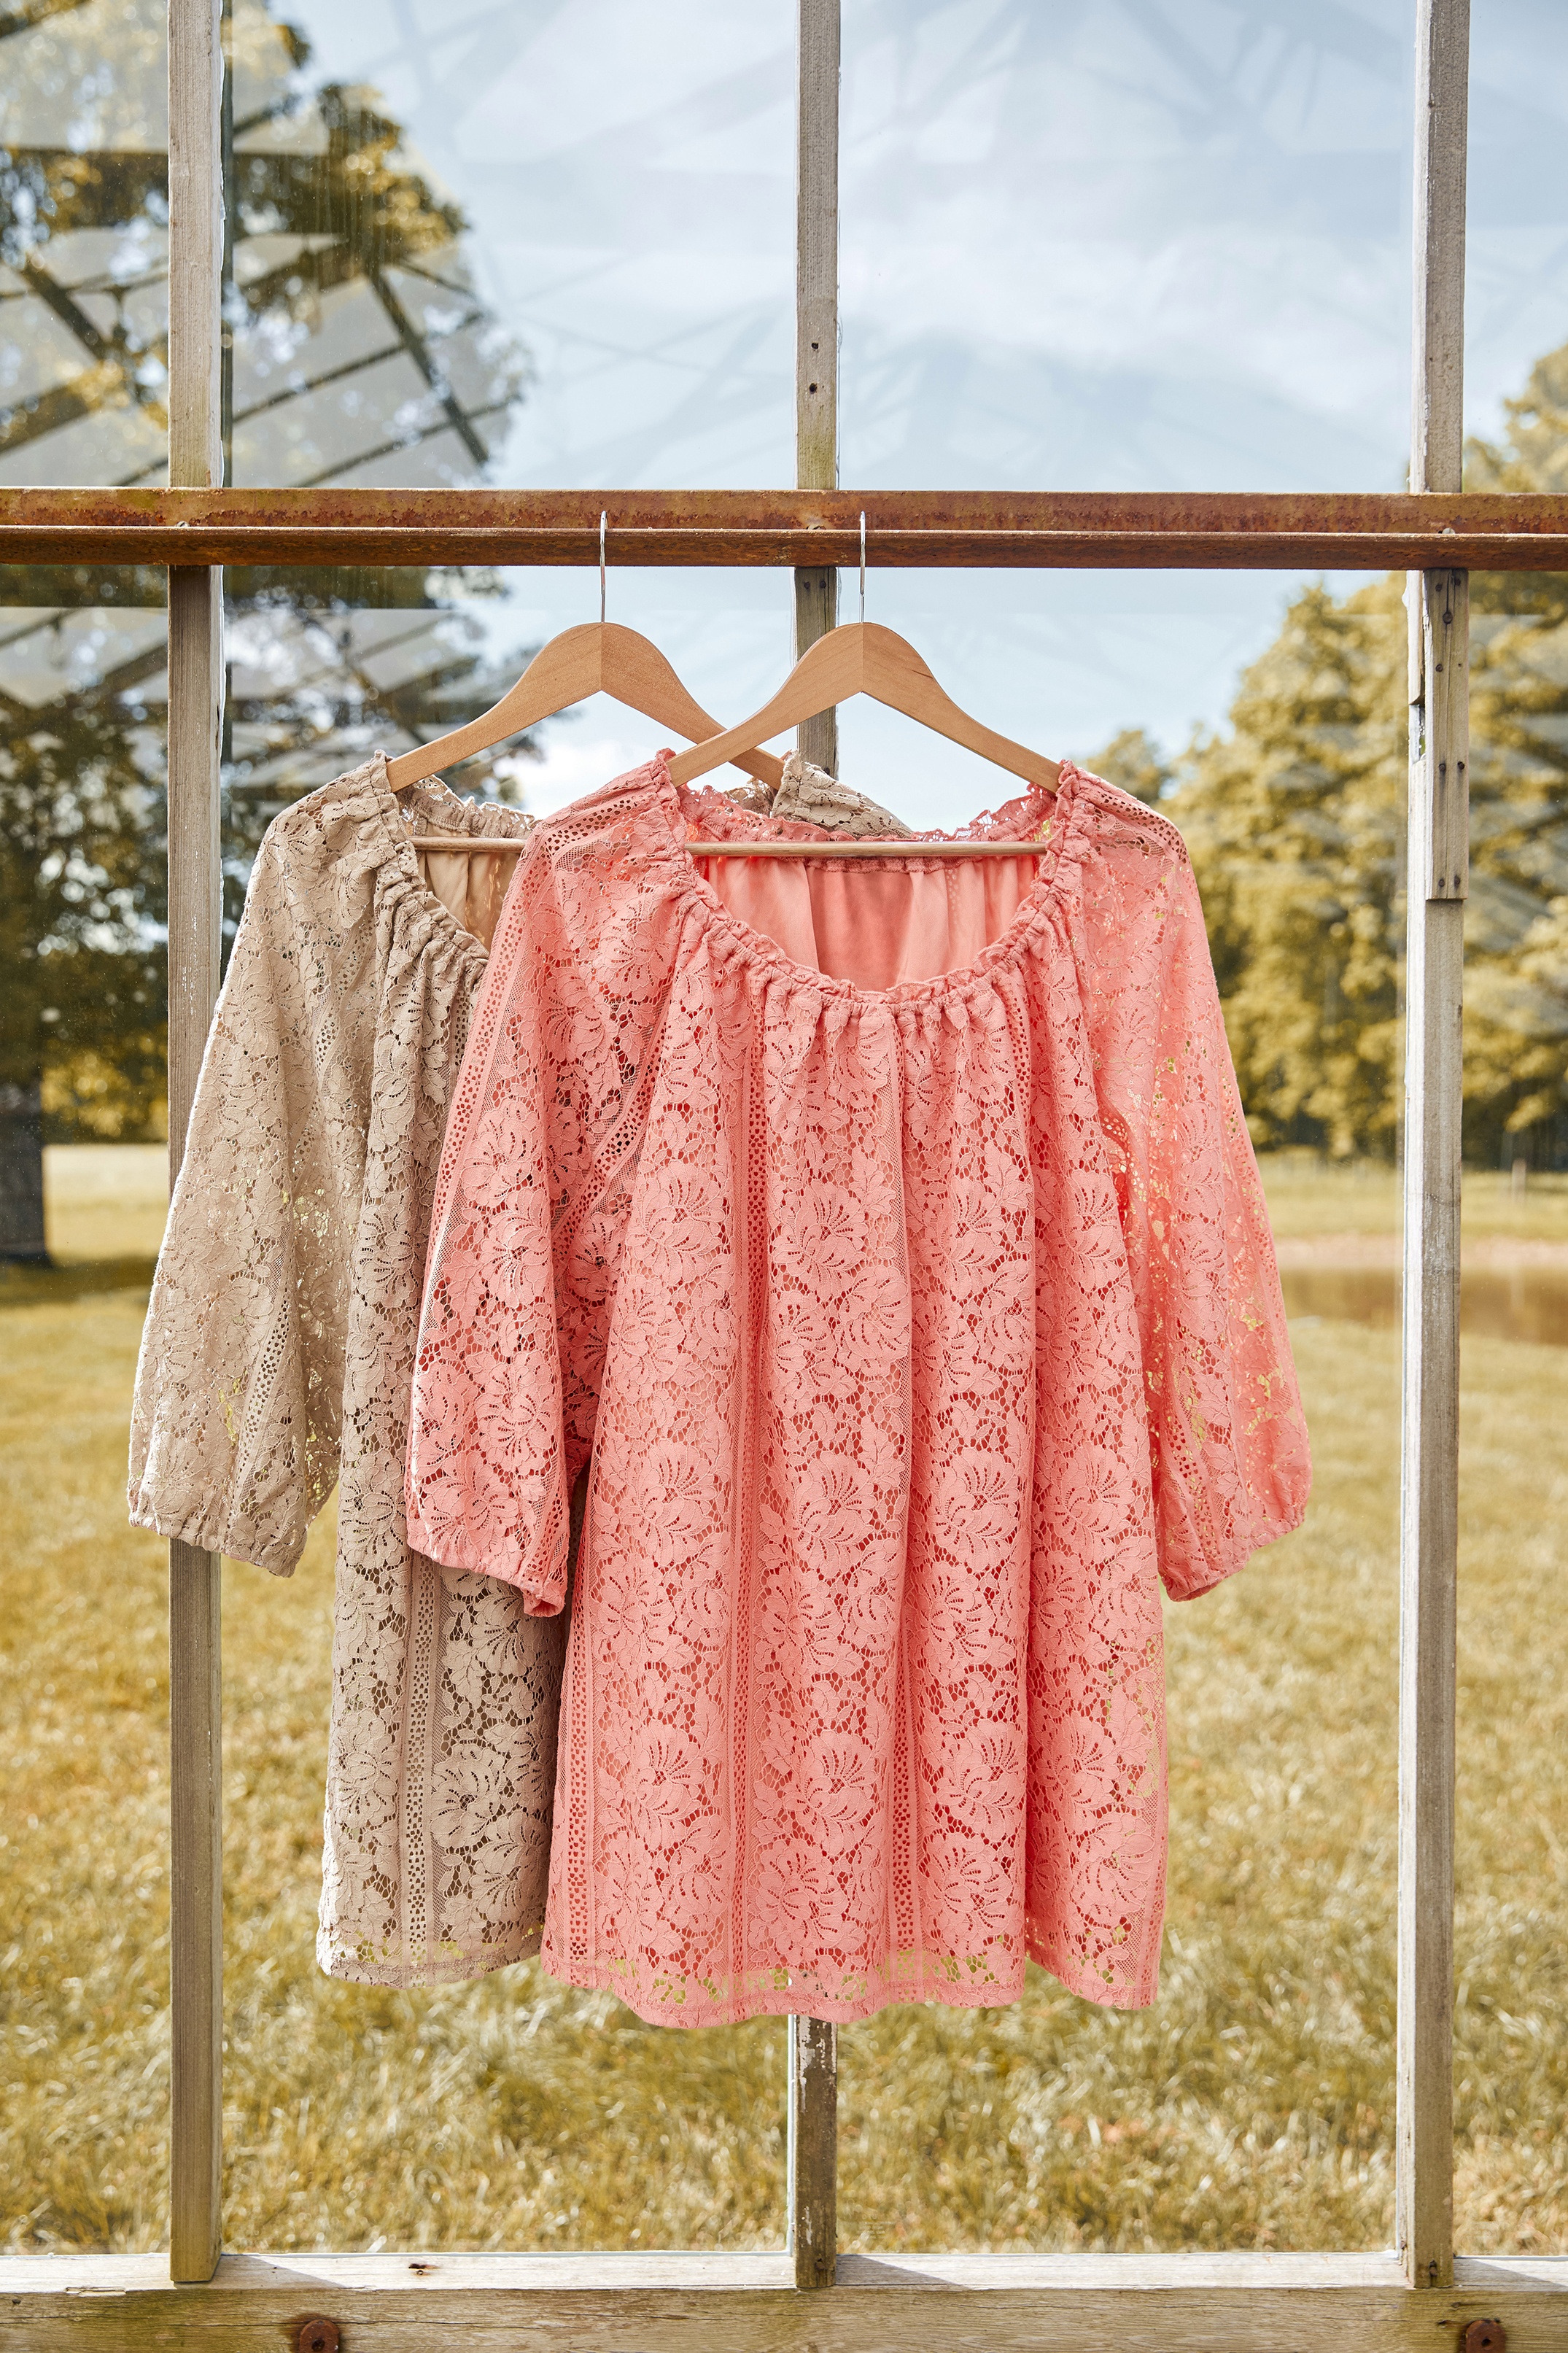 retouched brown and pink lace shirts hanging in window frame on sunny autumn day